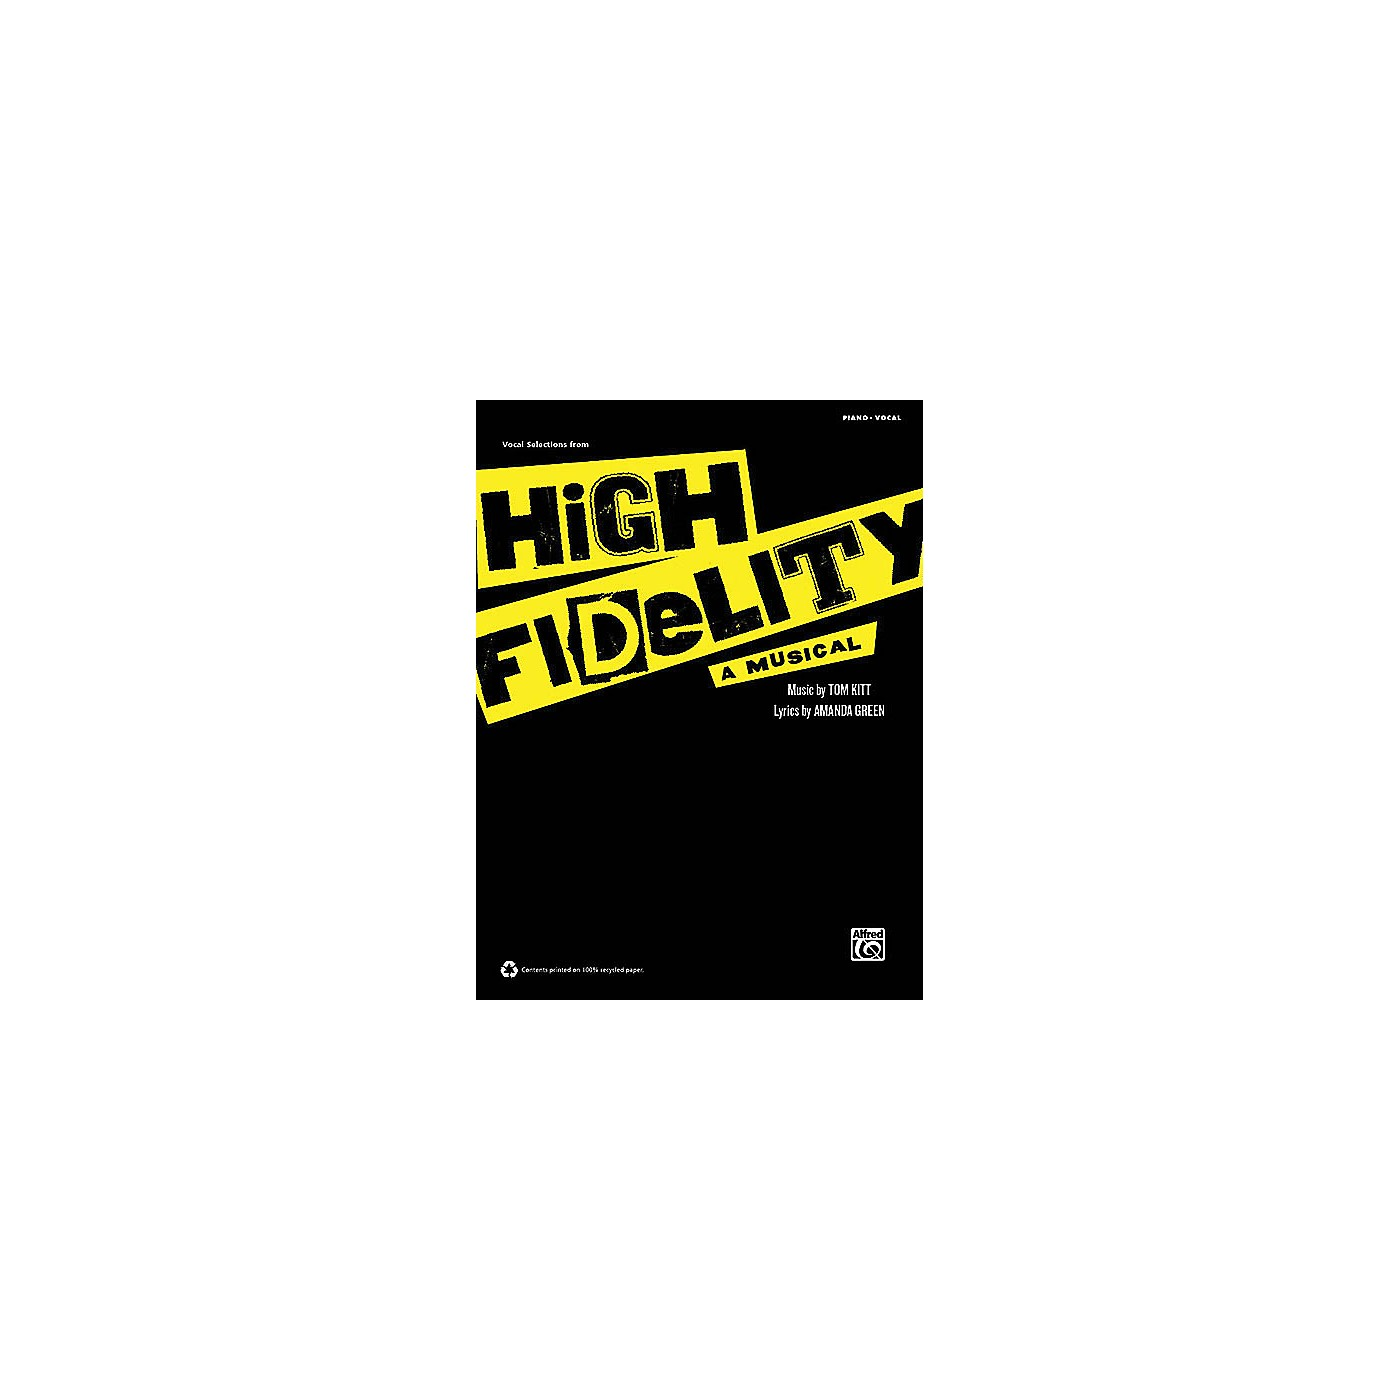 Alfred High Fidelity - A Musical (Vocal Selections) Vocal Selections Series Softcover thumbnail